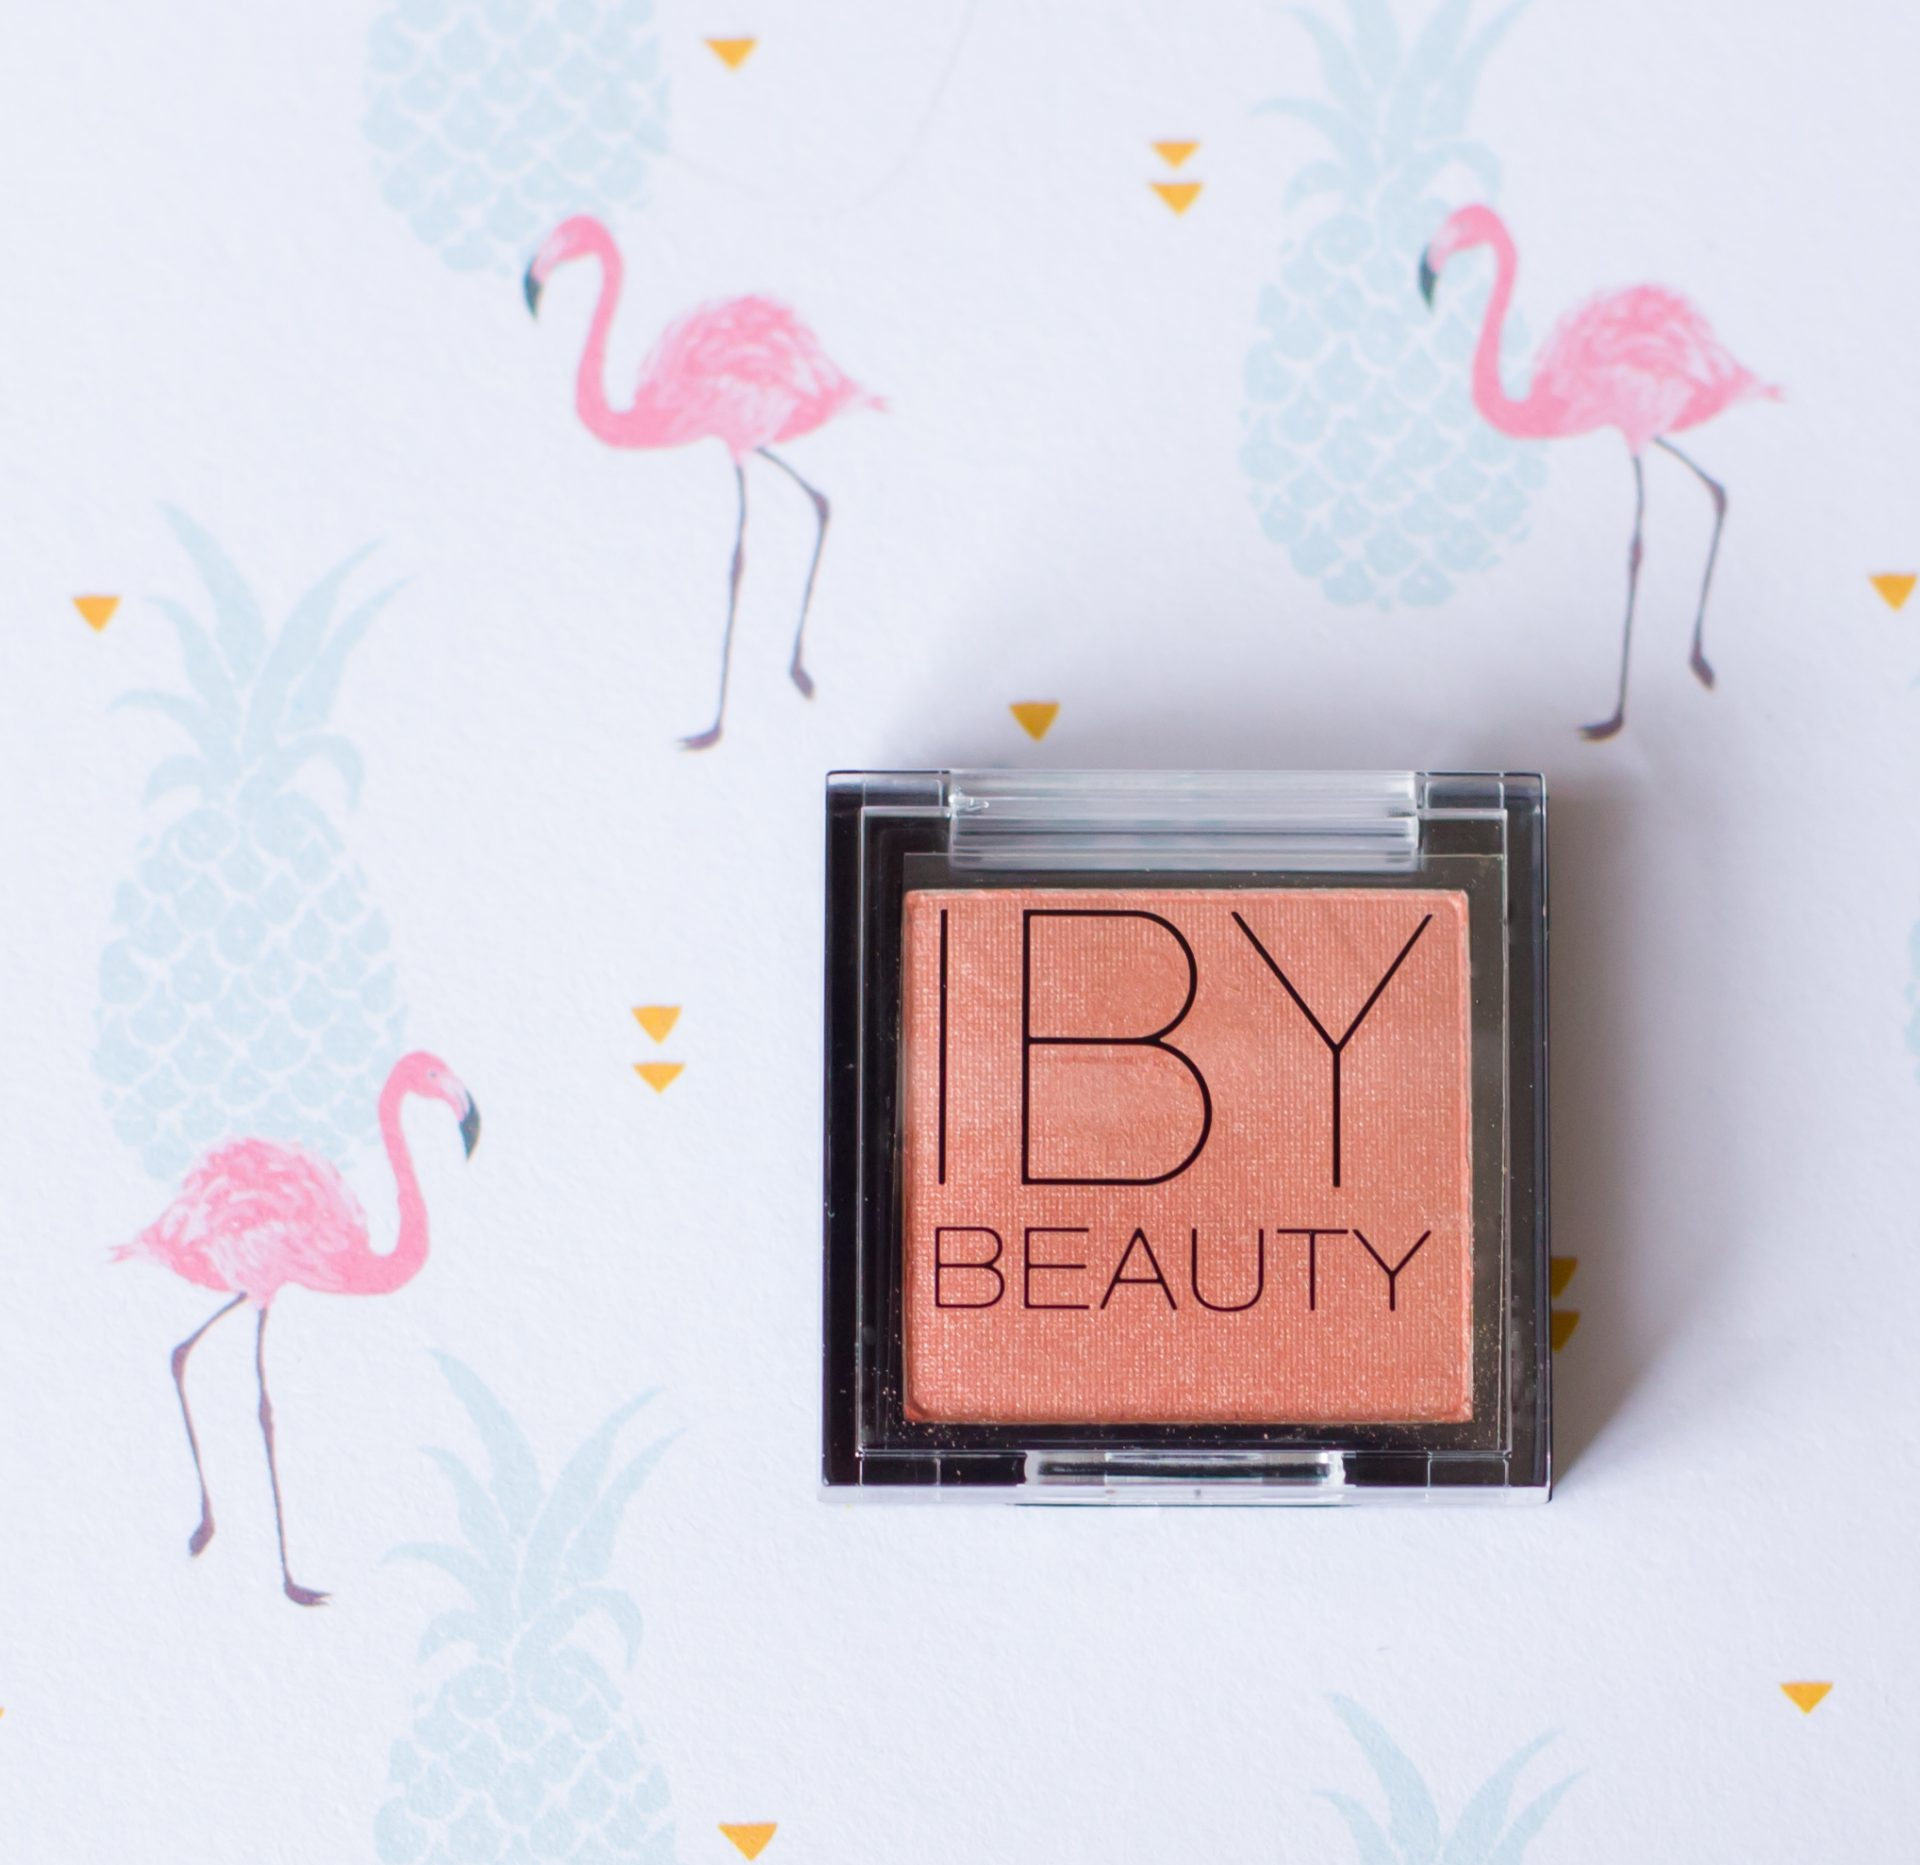 IBY Beauty highlighter - StyleTone box maart 2018